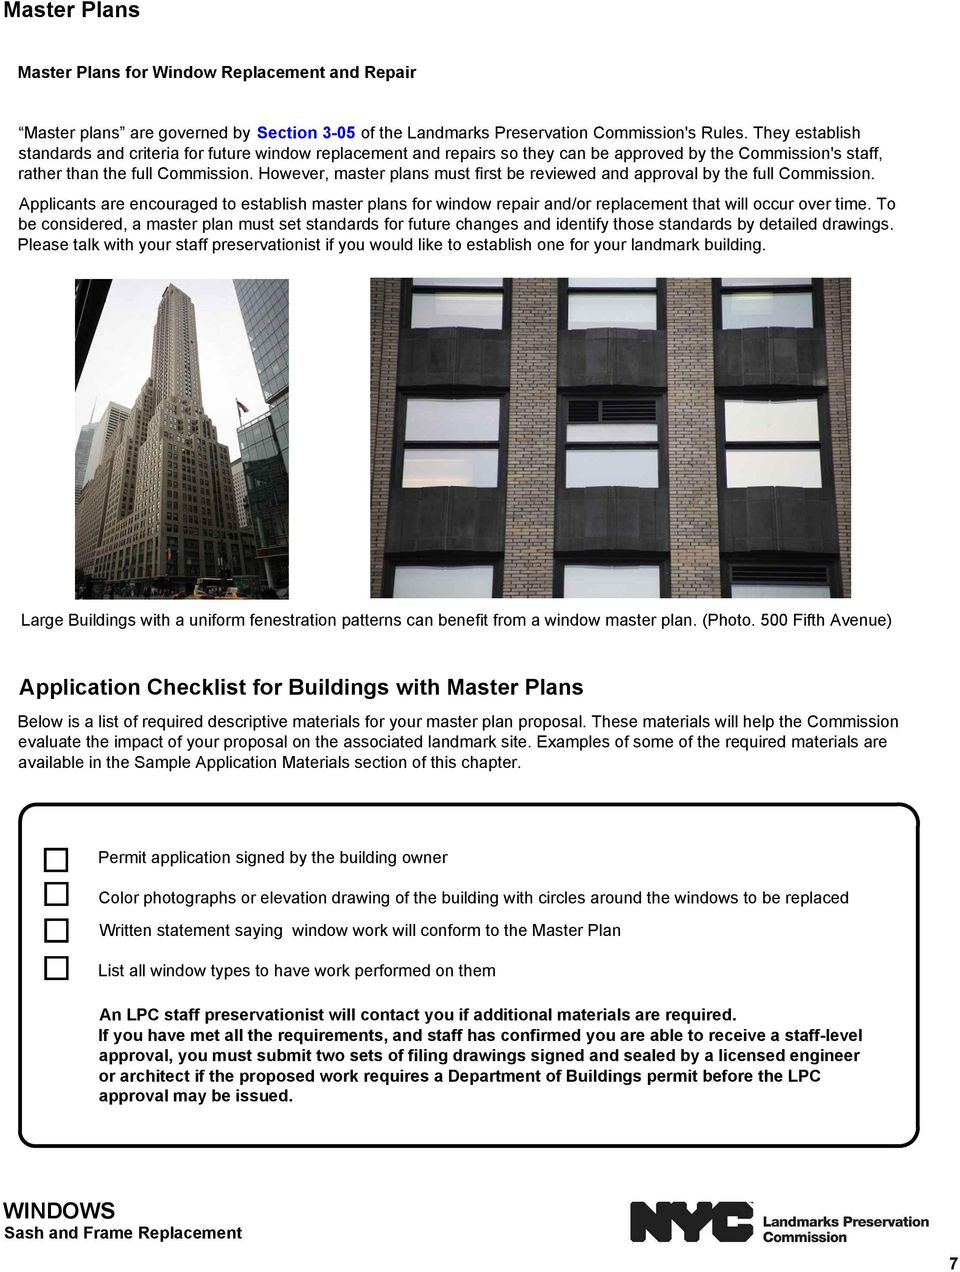 However, master plans must first be reviewed and approval by the full Commission. Applicants are encouraged to establish master plans for window repair and/or replacement that will occur over time.